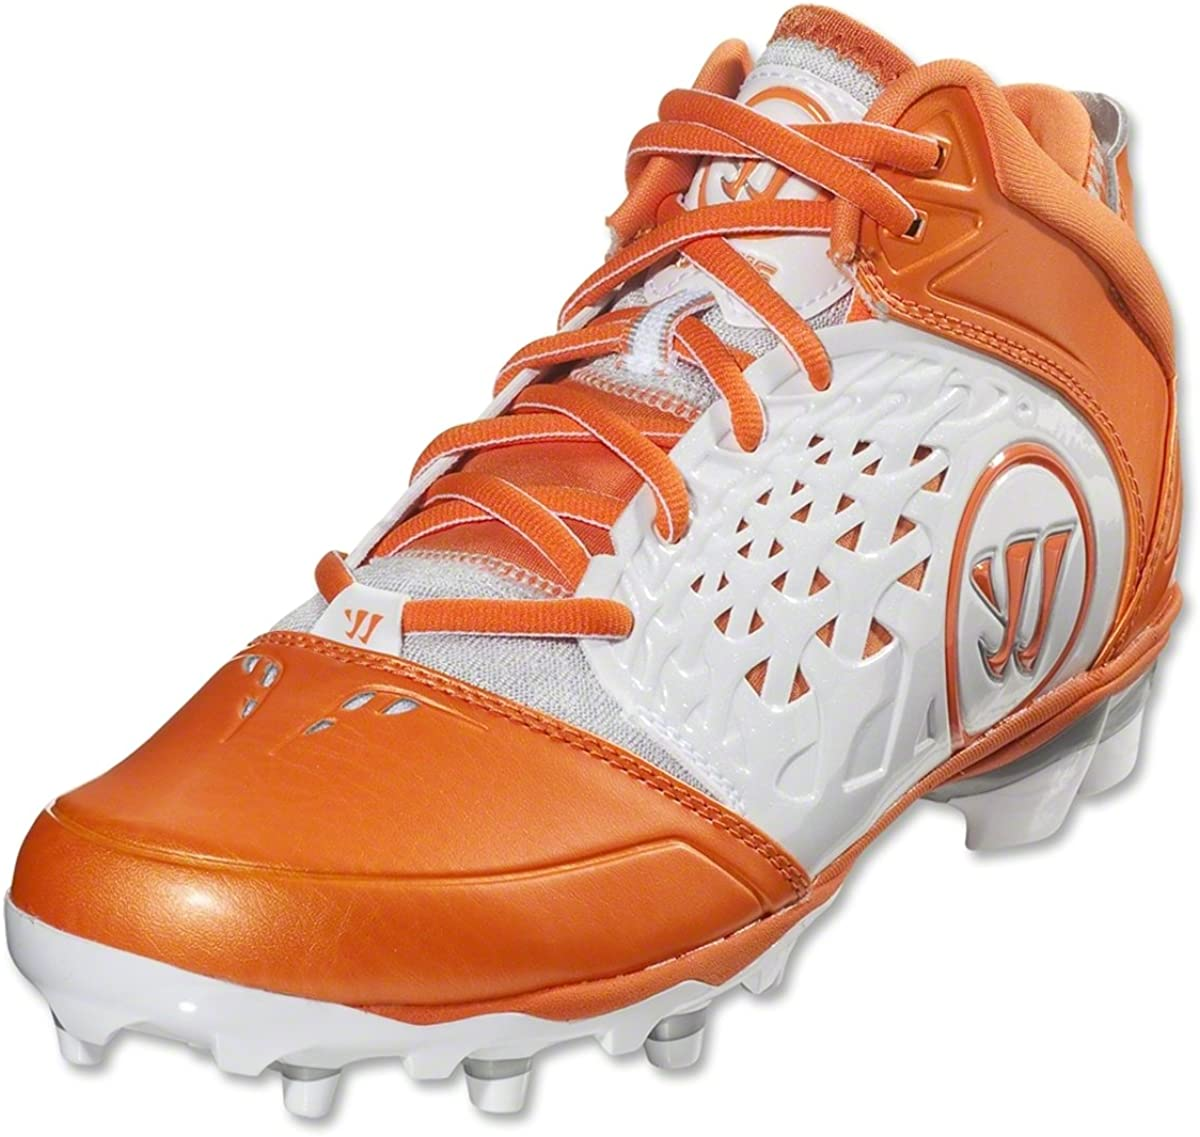 WARRIOR New Mens Lacrosse Burn 8.0 Mid Cleats White/Red Sz 11 M Ret: $79.99: Clothing